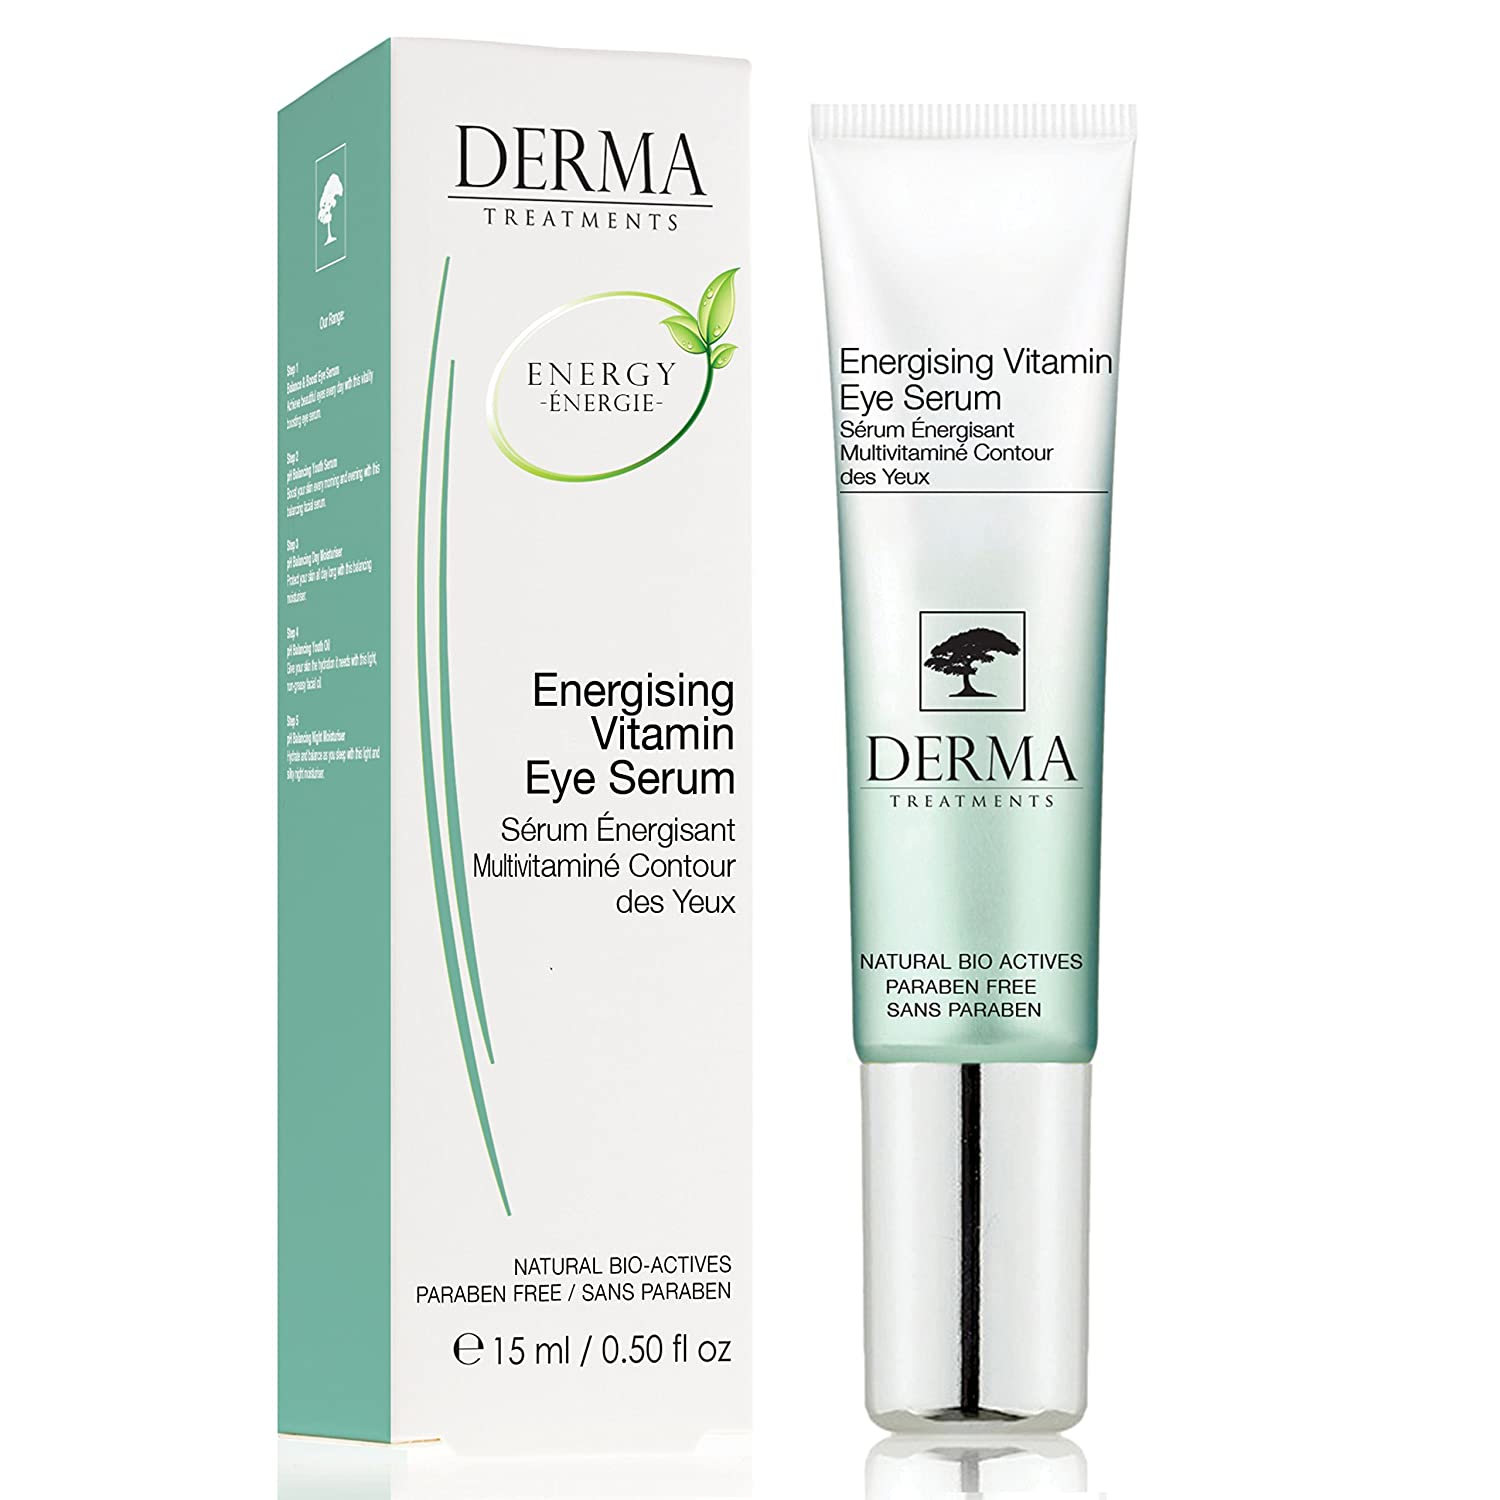 Anti Ageing PREMIUM Eye Serum with Vitamin E & Aloe Vera for Dark Circles, Puffiness - Best for Eye Wrinkles - Clinically tested with all natural indigents - For all Skin types - MADE IN UK - DERMA skinChemists DTEVES DTEVES_-15ml